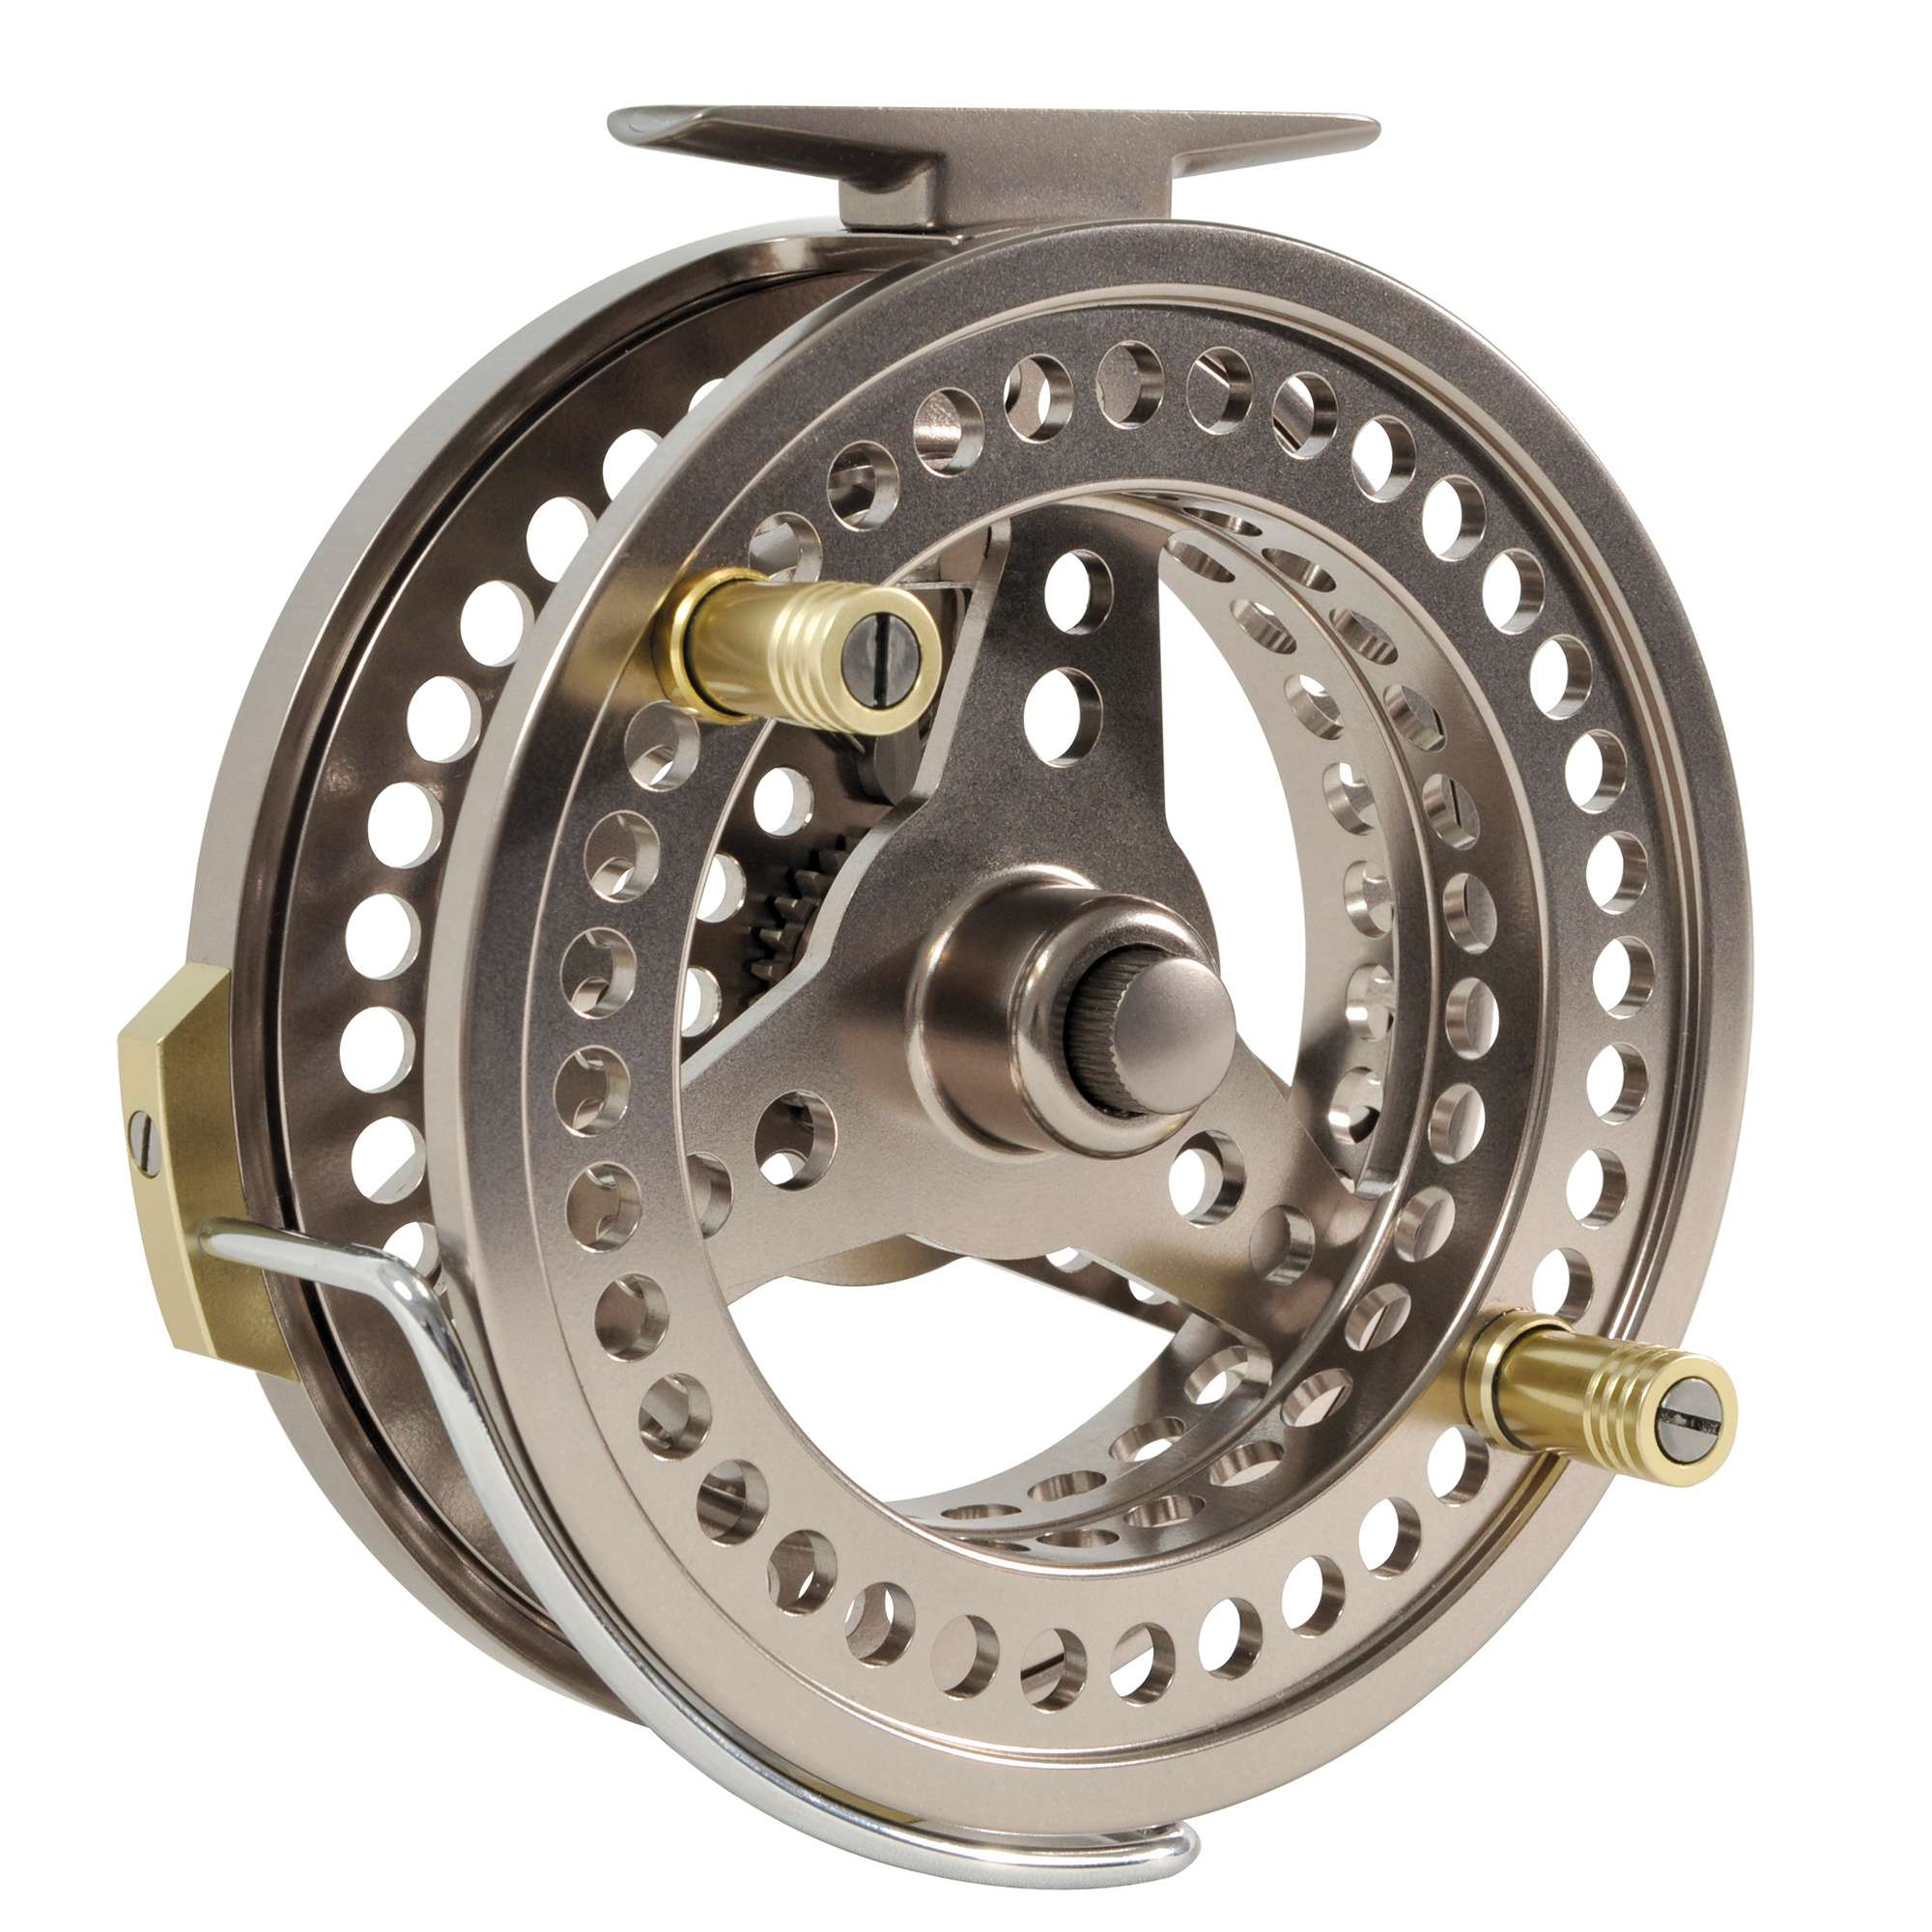 TFG Classic Centre Pin Reel